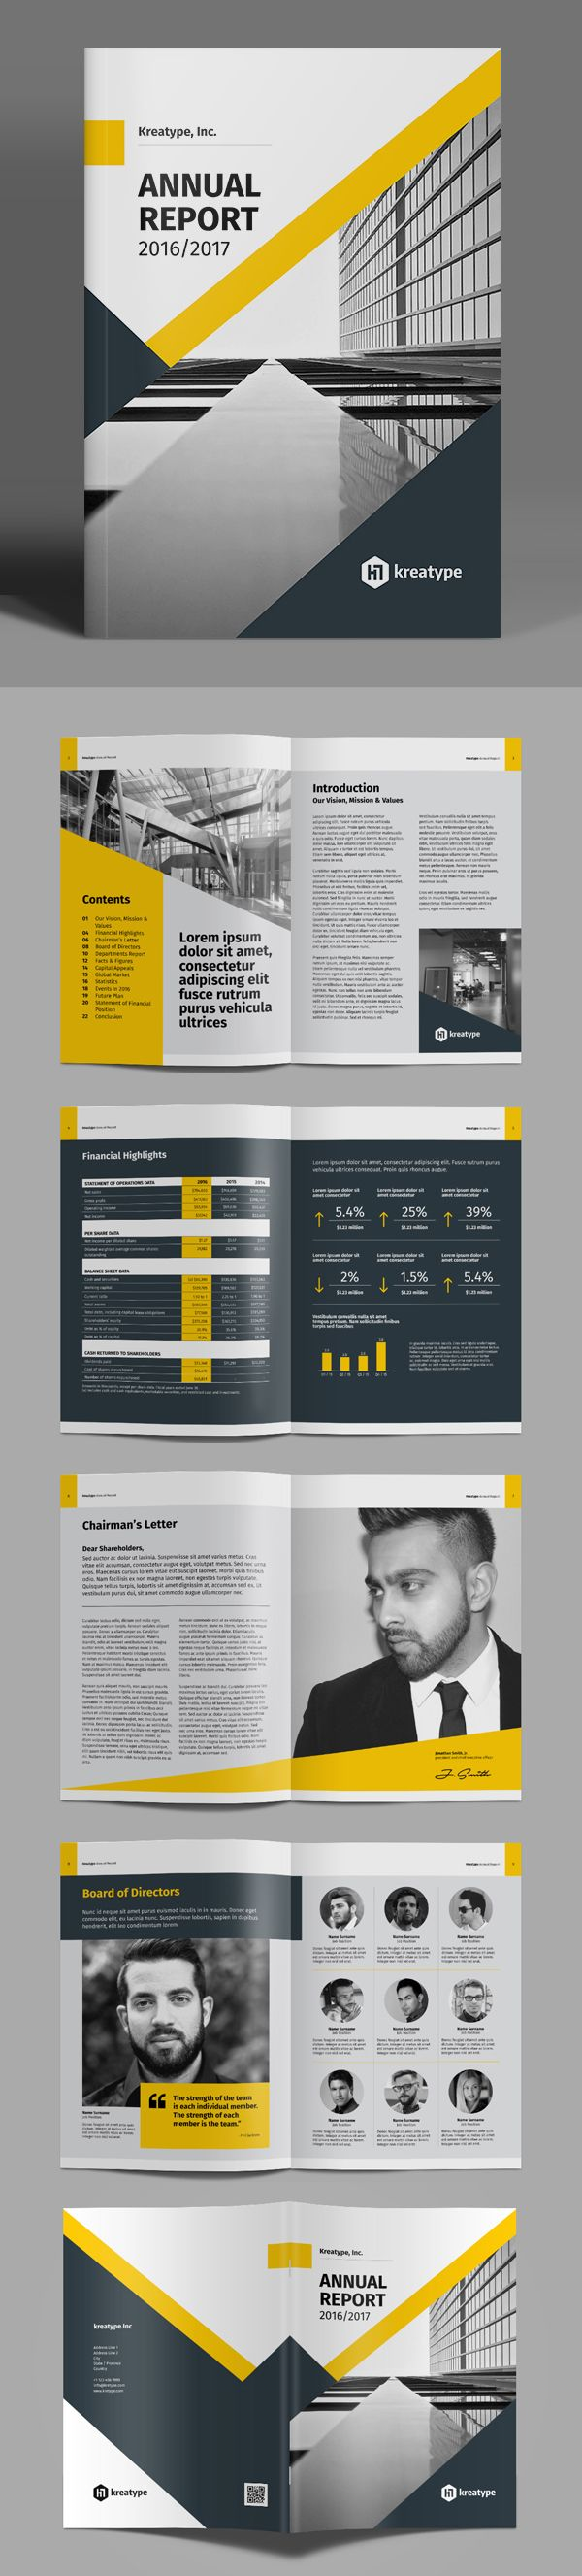 Kreatype Annual Report                                                                                                                                                                                 More                                                                                                                                                                                 More